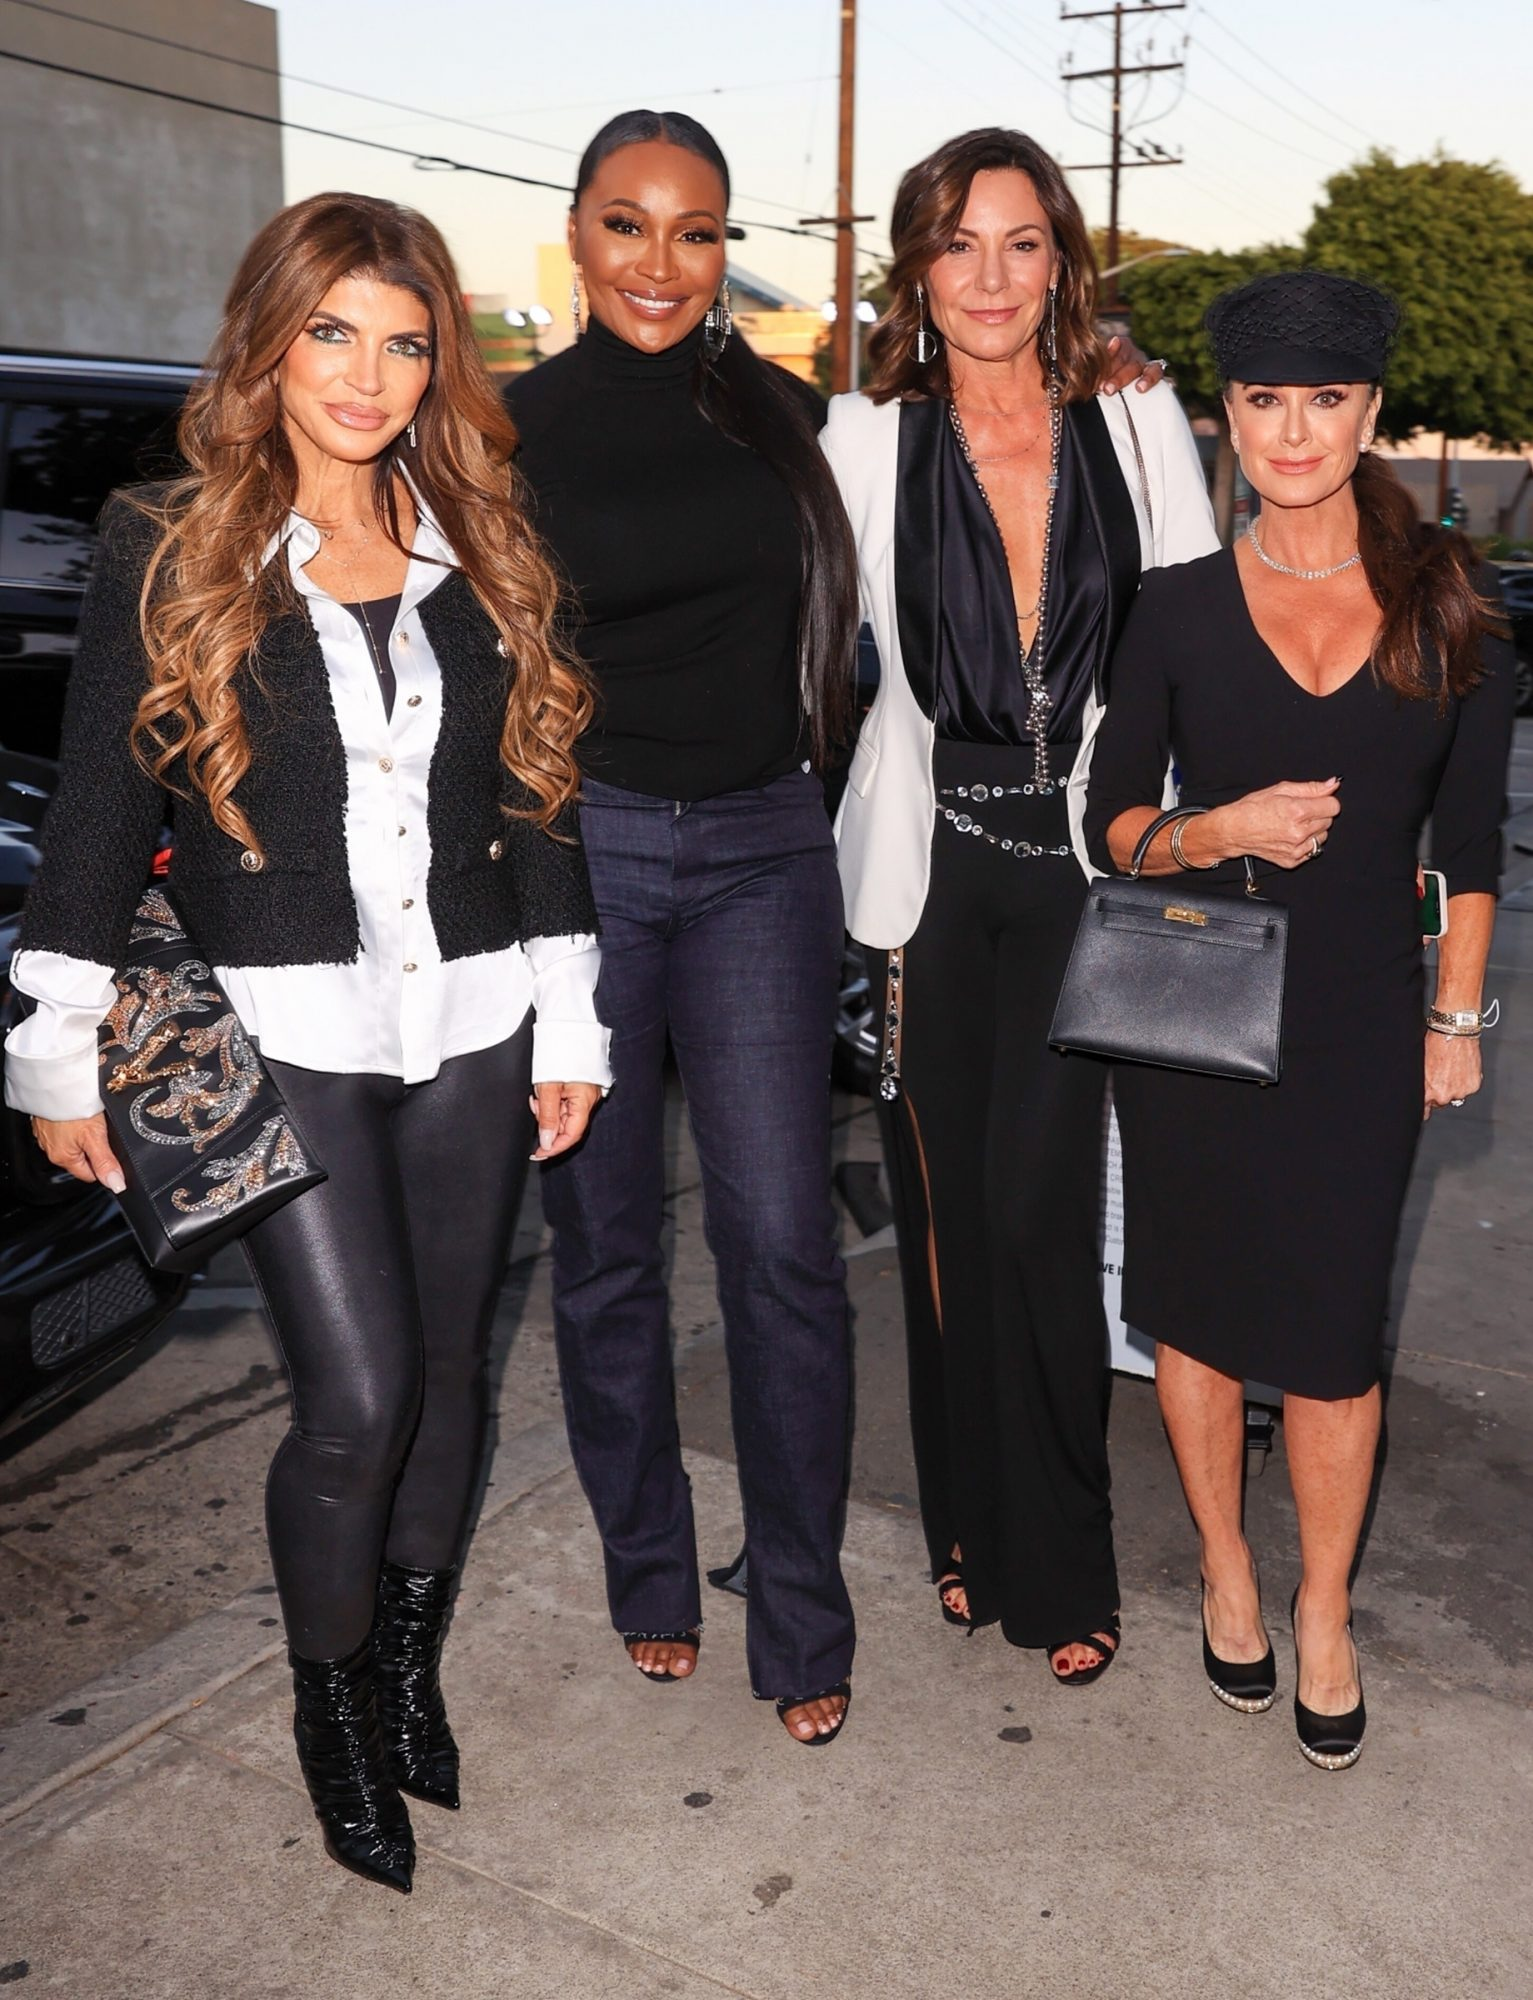 West Hollywood, CA - *EXCLUSIVE* - This is the crossover we've all been waiting for! The Housewives of Atlanta, Beverly Hills, New Jeresey, and New York meet up in West Hollywood for dinner at Craigs. Pictured: Cynthia Bailey, Kyle Richards, LuAnn de Lesseps ,Teresa Giudice, Lisa Rinna